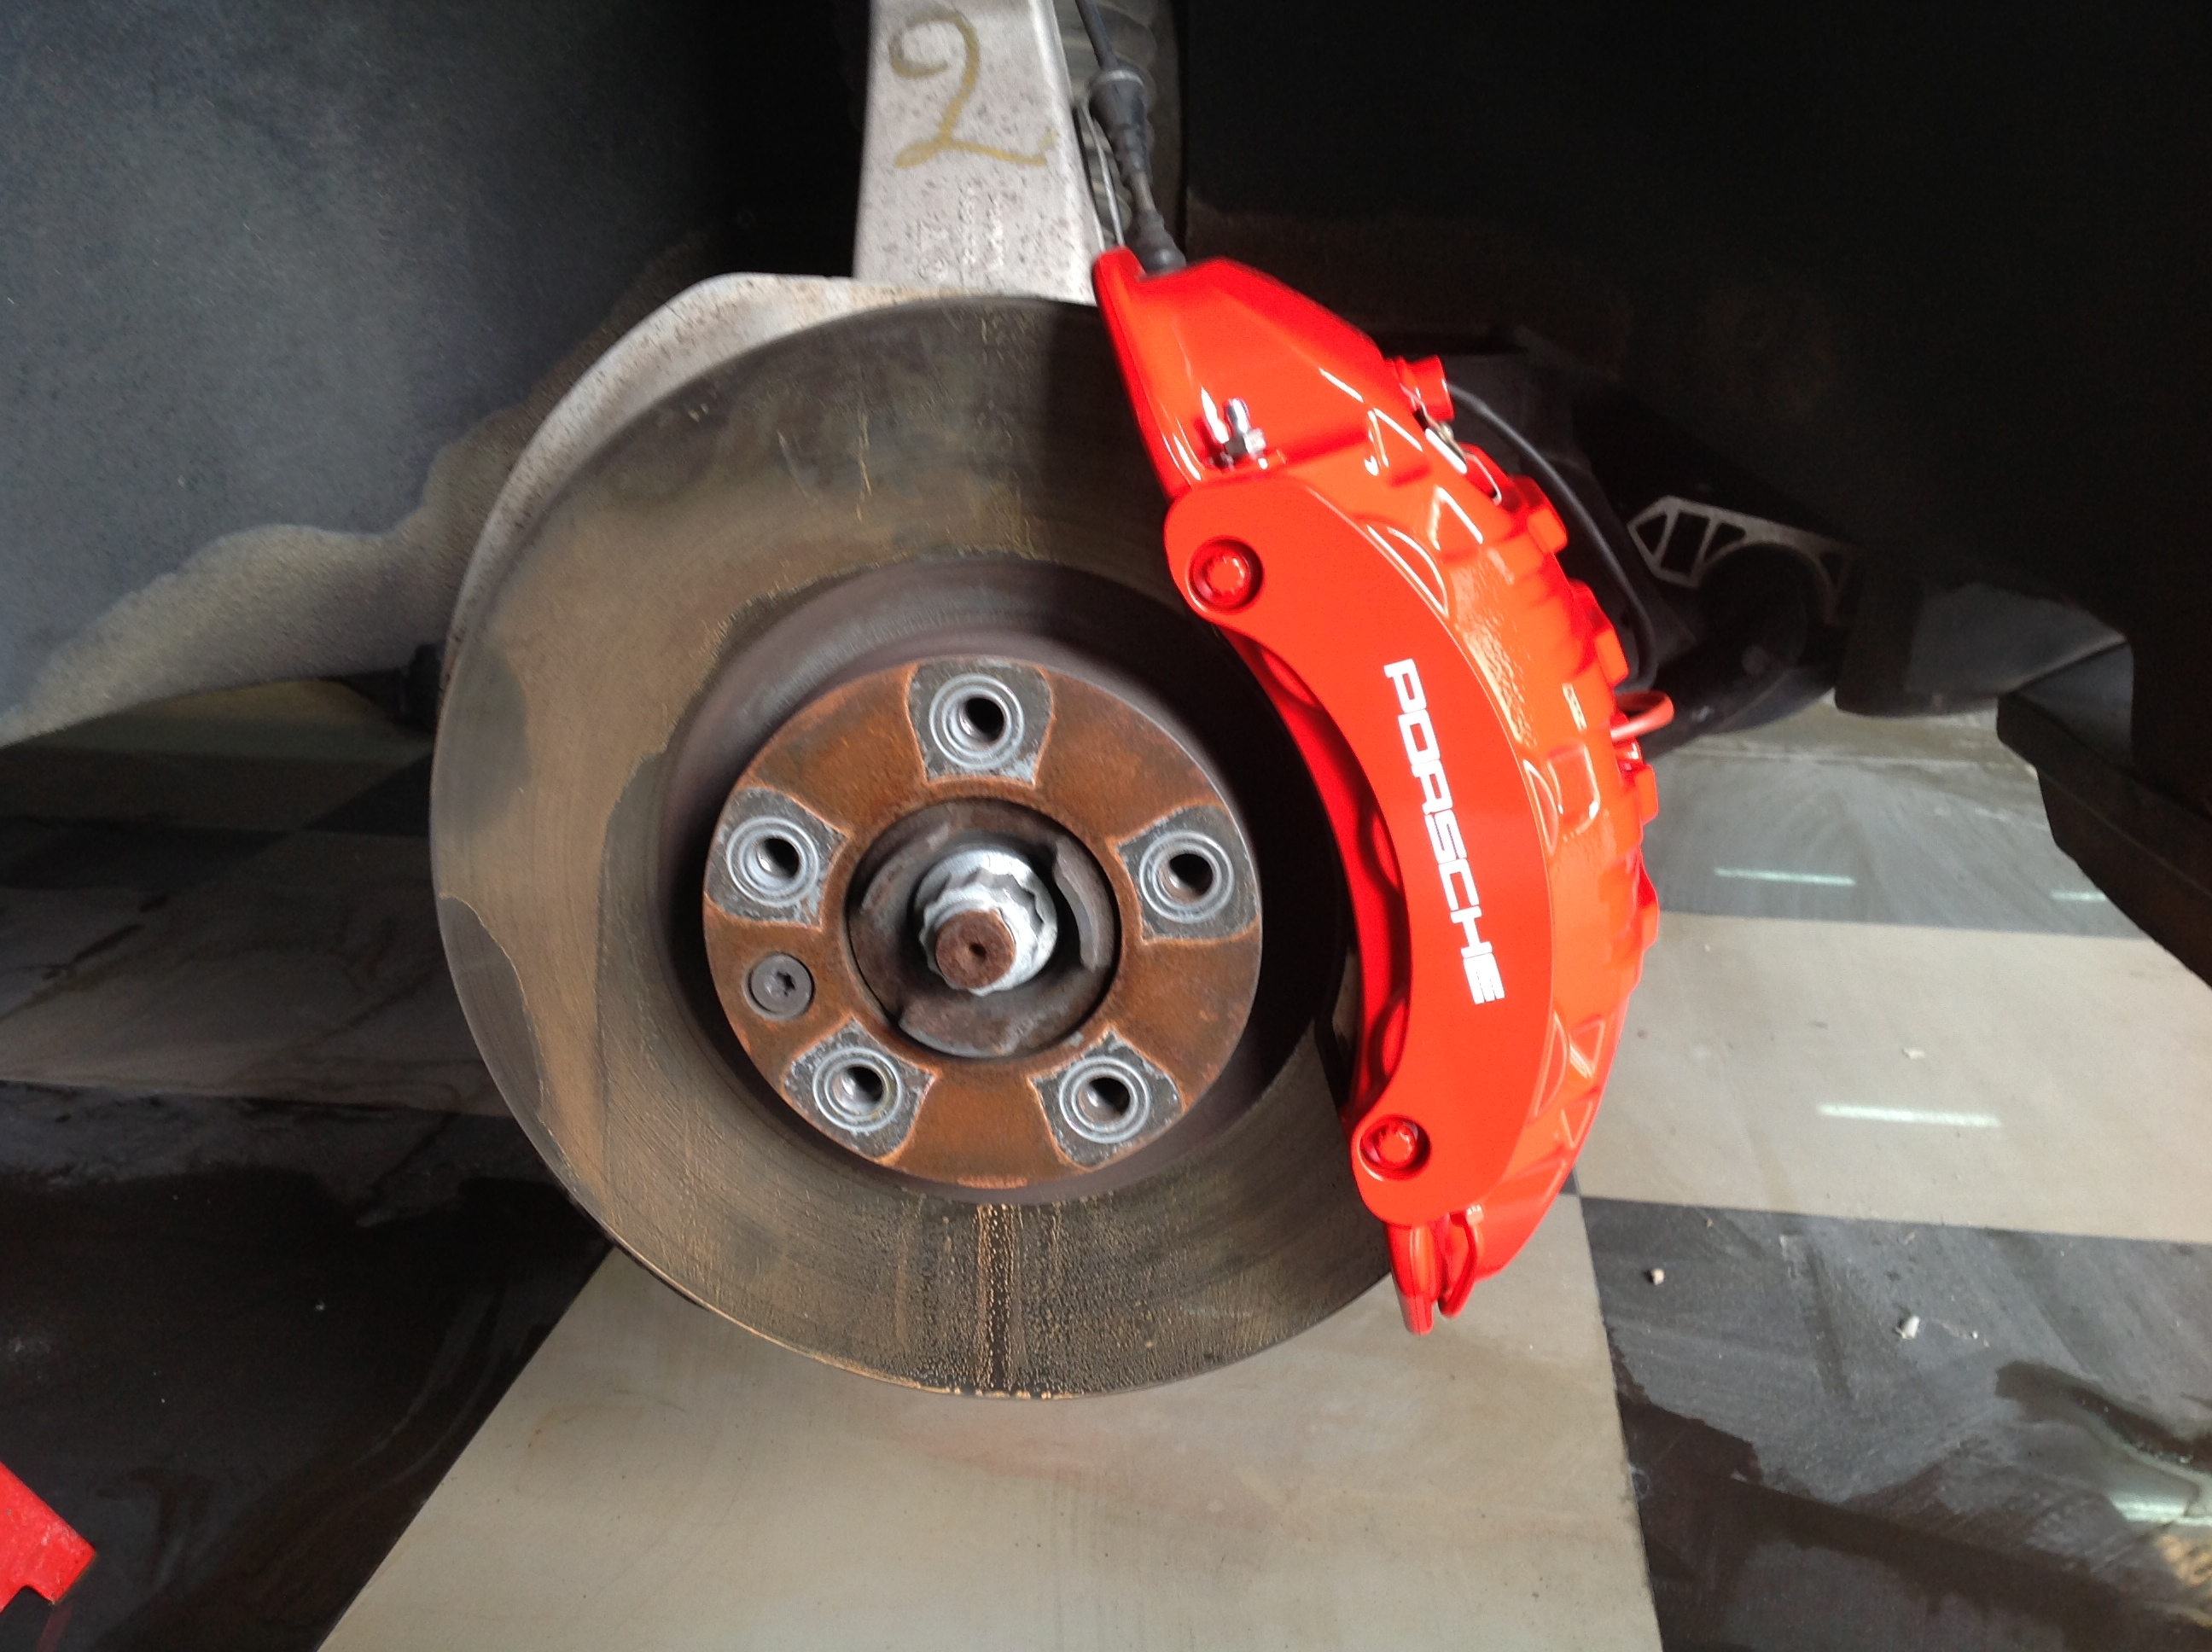 Cayenne brake caliper after